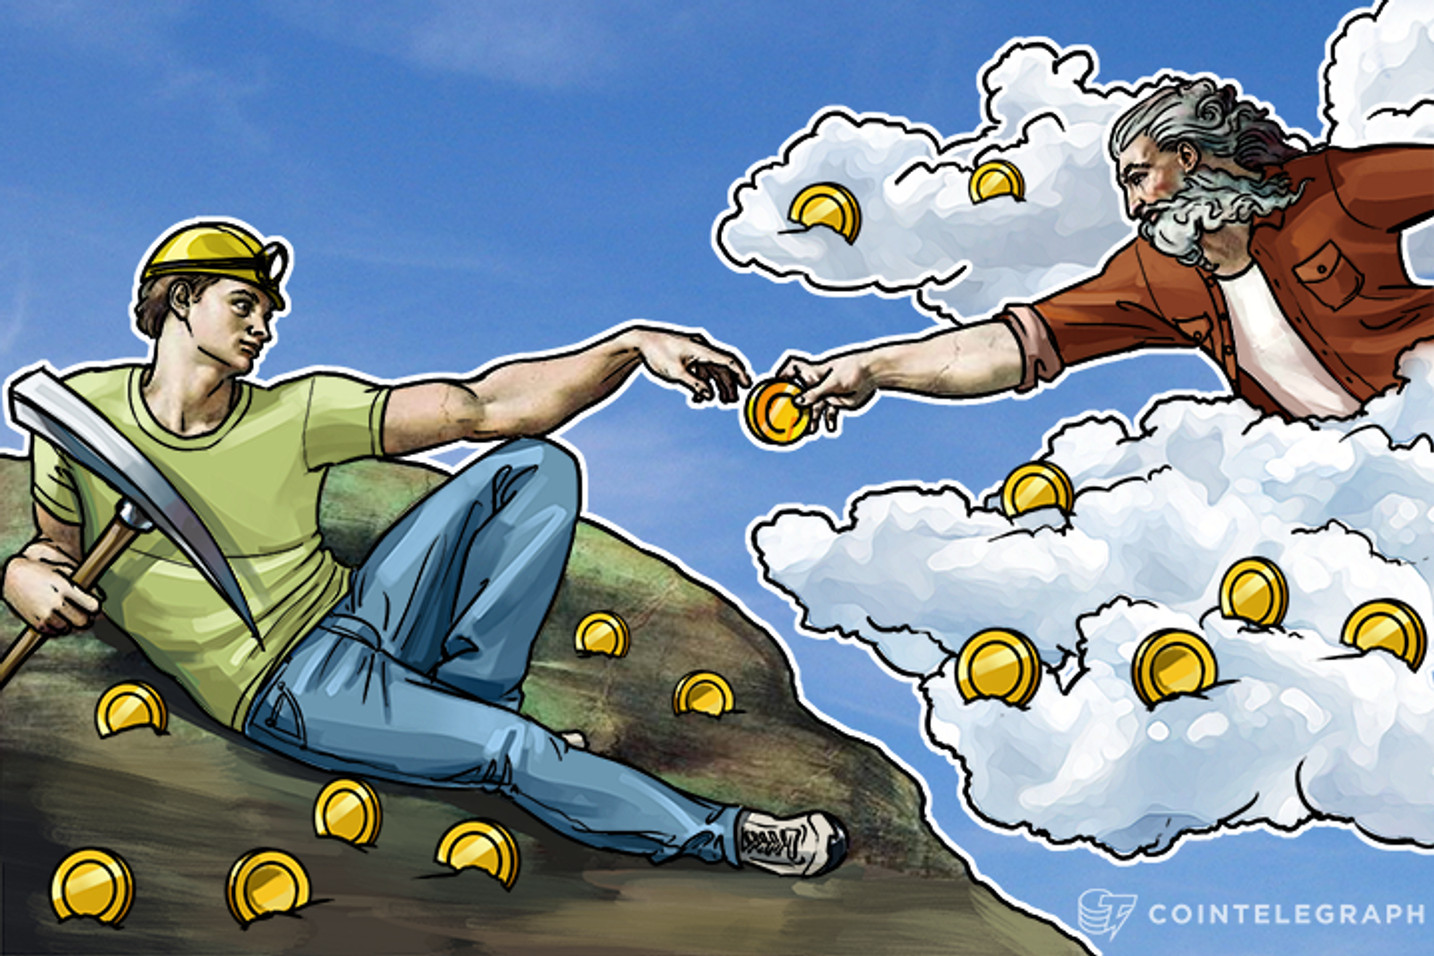 Bitcoin Mining, Ethereum Mining, Cloud Mining: 2016 Overview